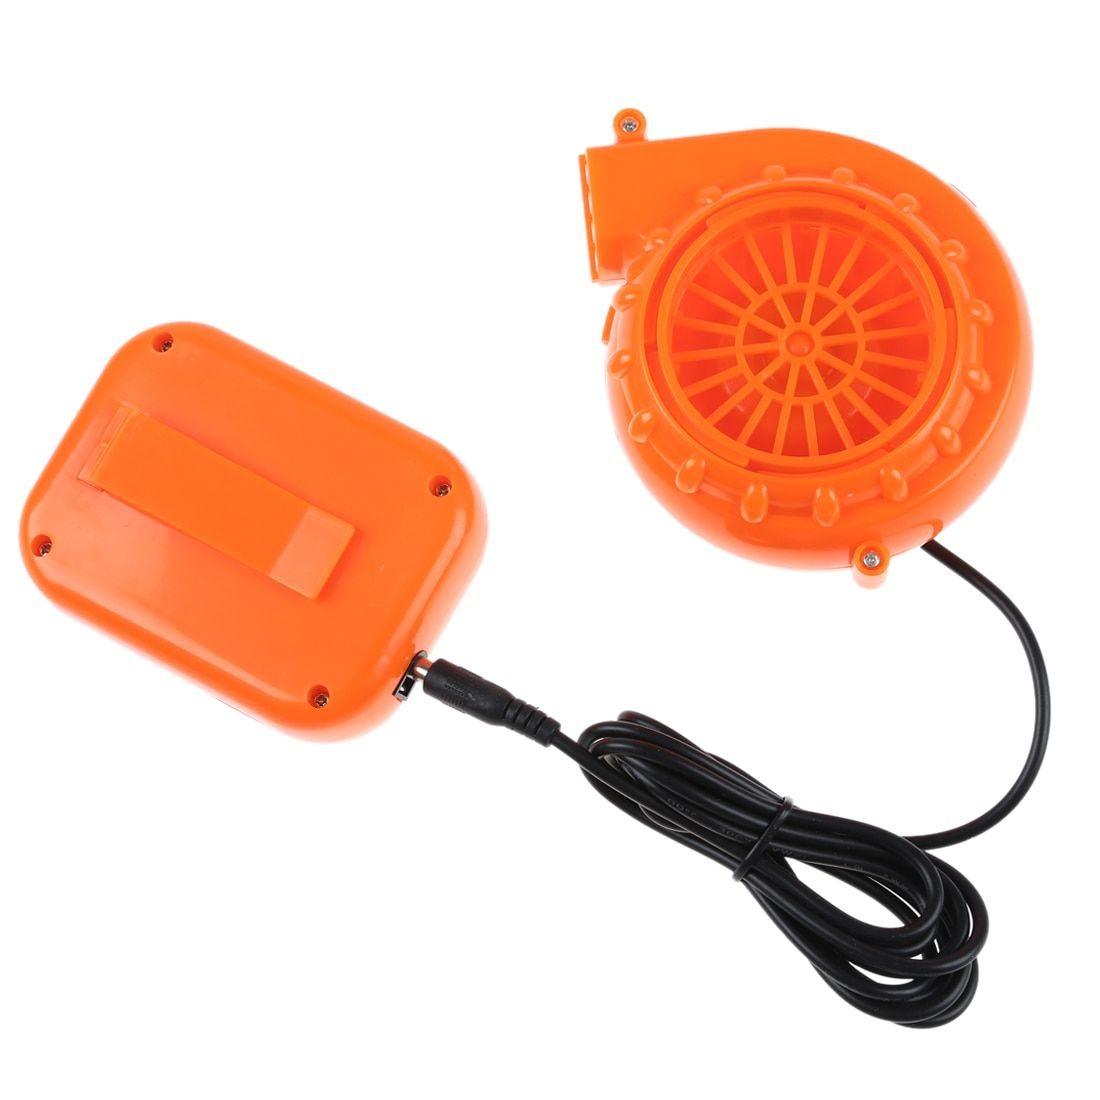 Hot Sale Mini Fan Blower for Mascot Head Inflatable Costume 6V Powered by Dry Battery